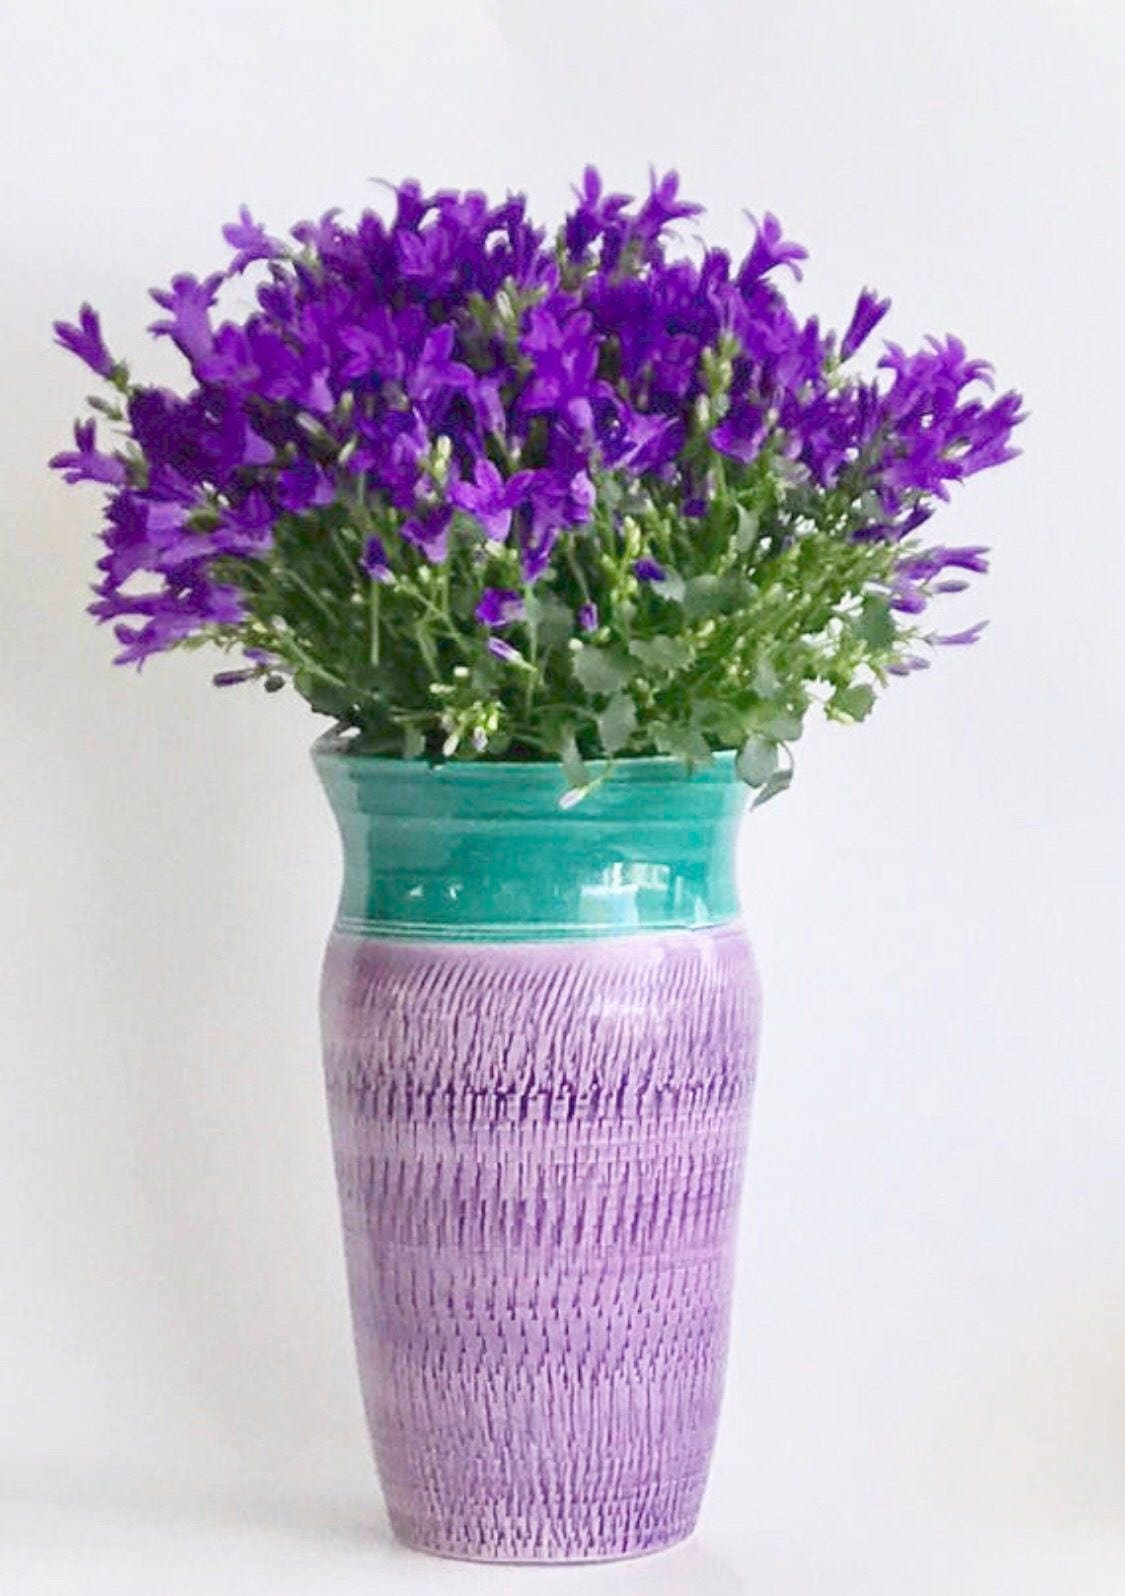 Etsy & Flower Vase in Green and Purple